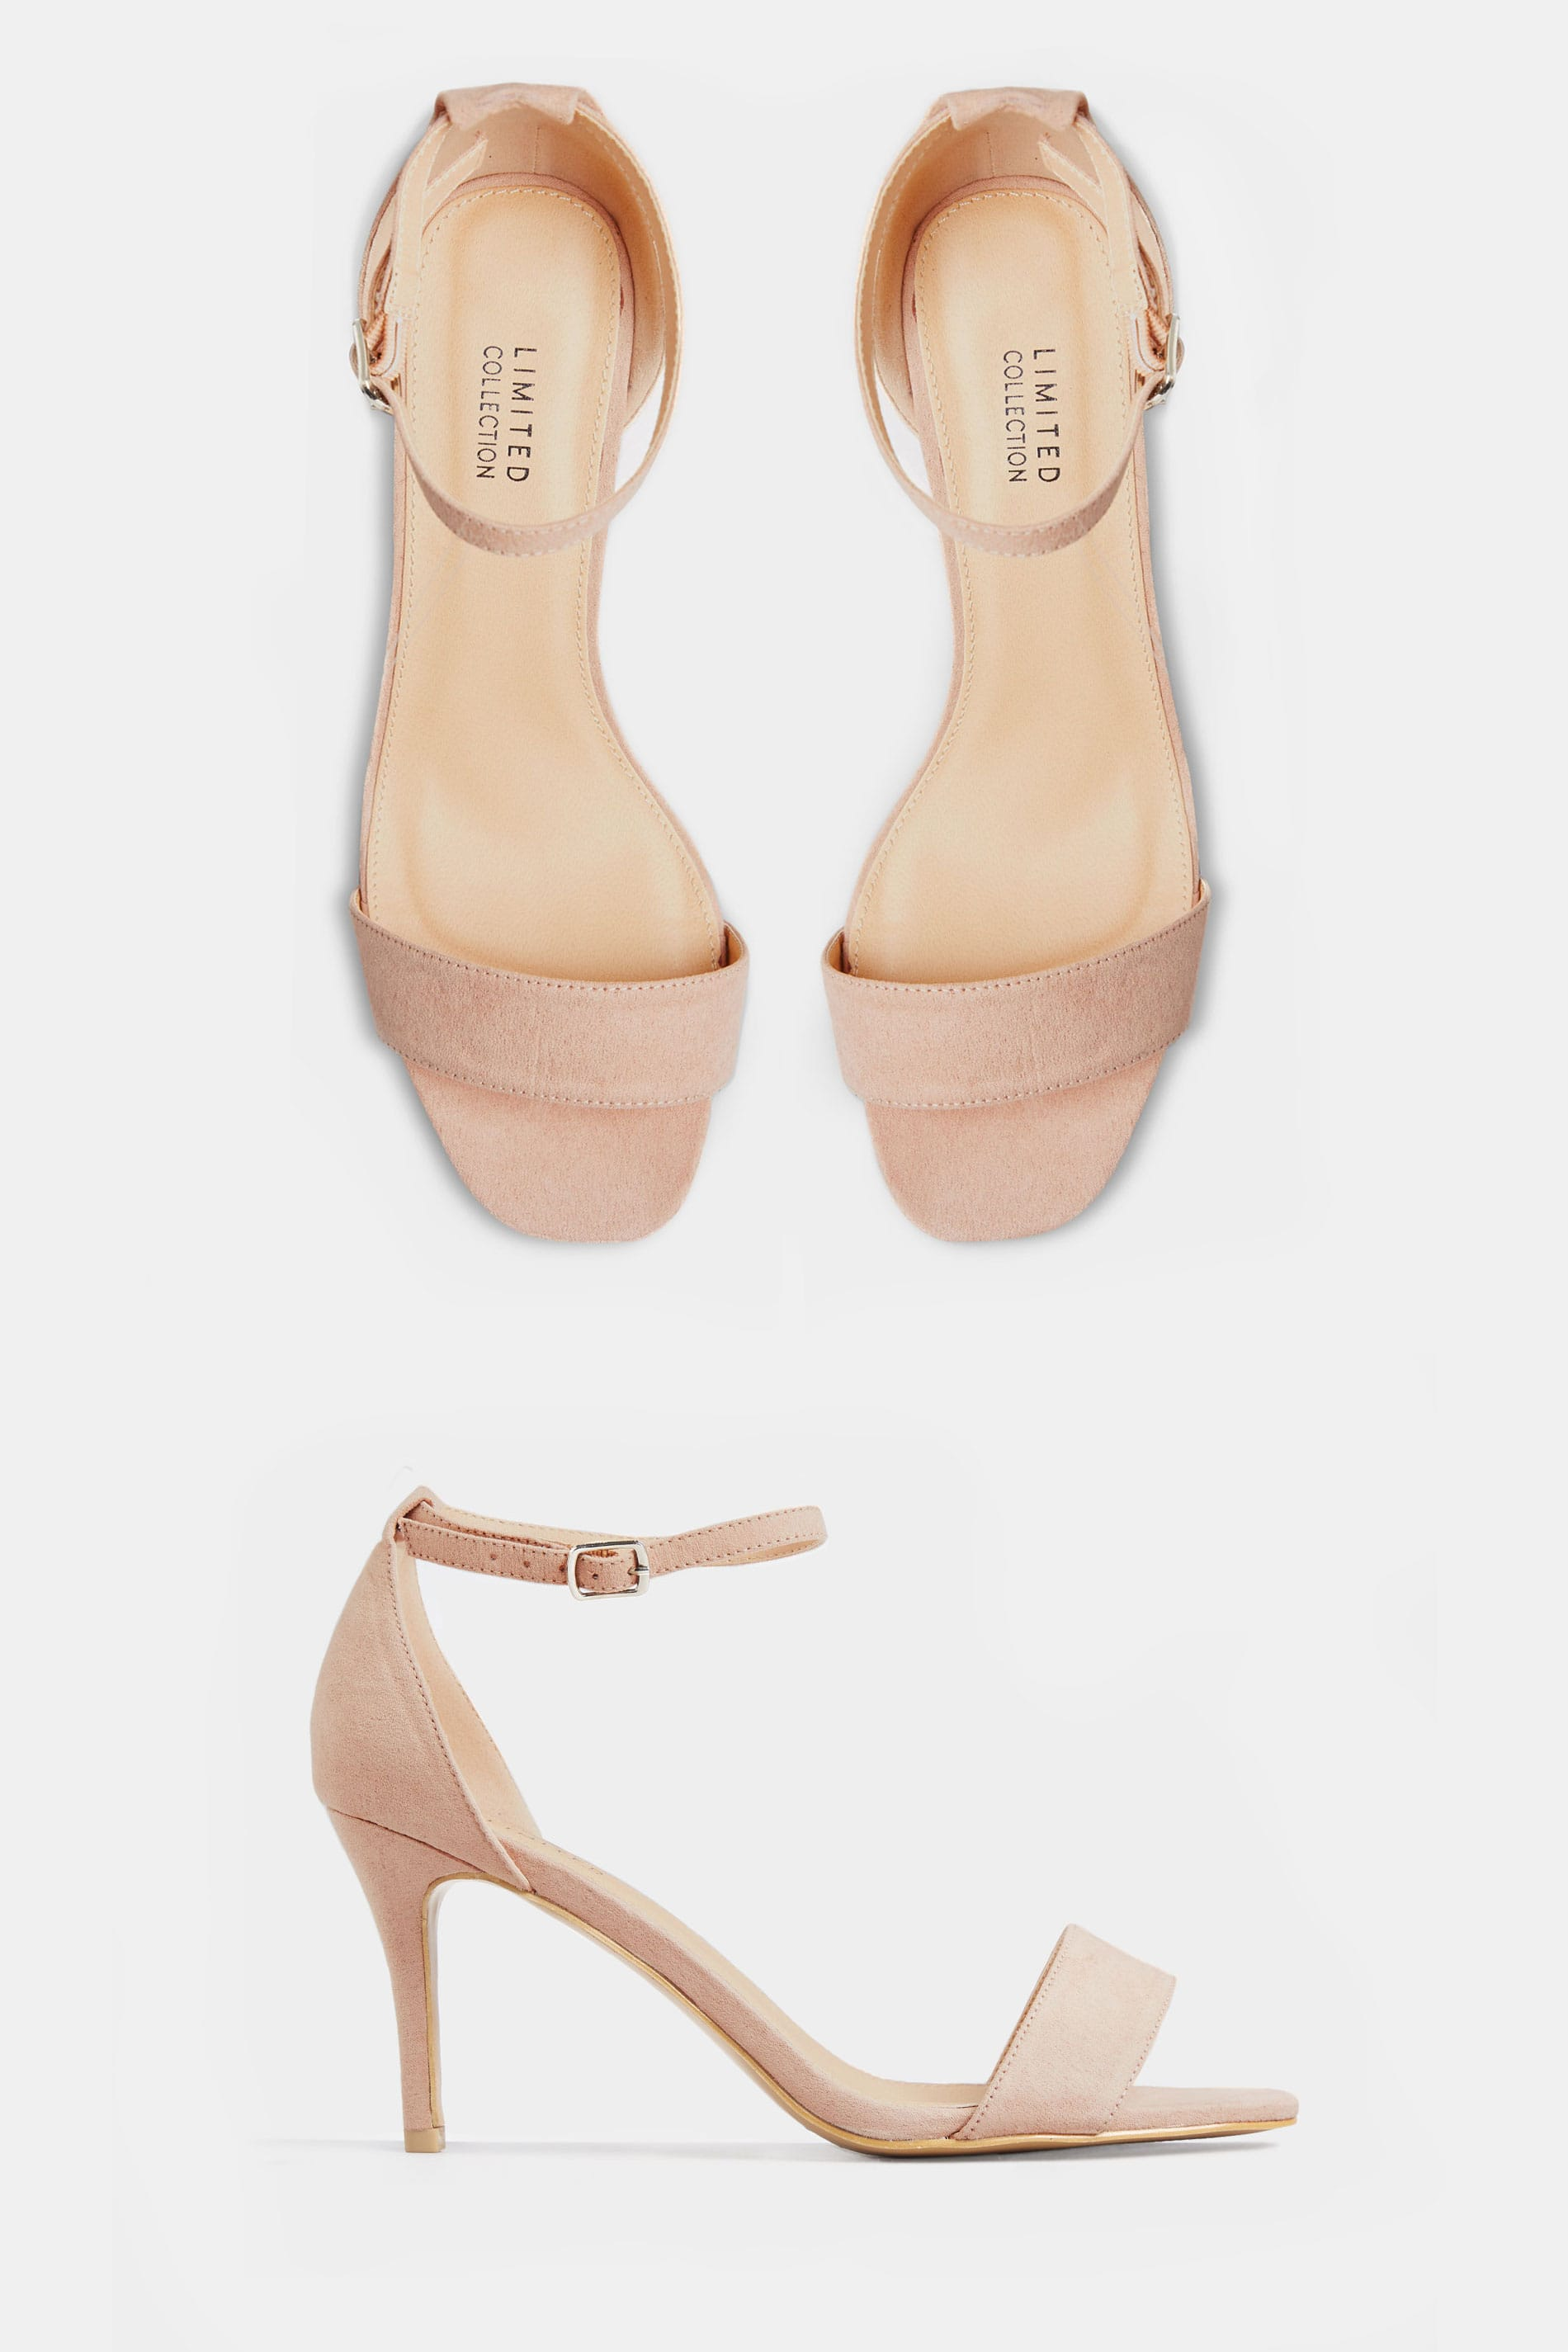 LIMITED COLLECTION Nude Strappy Heels